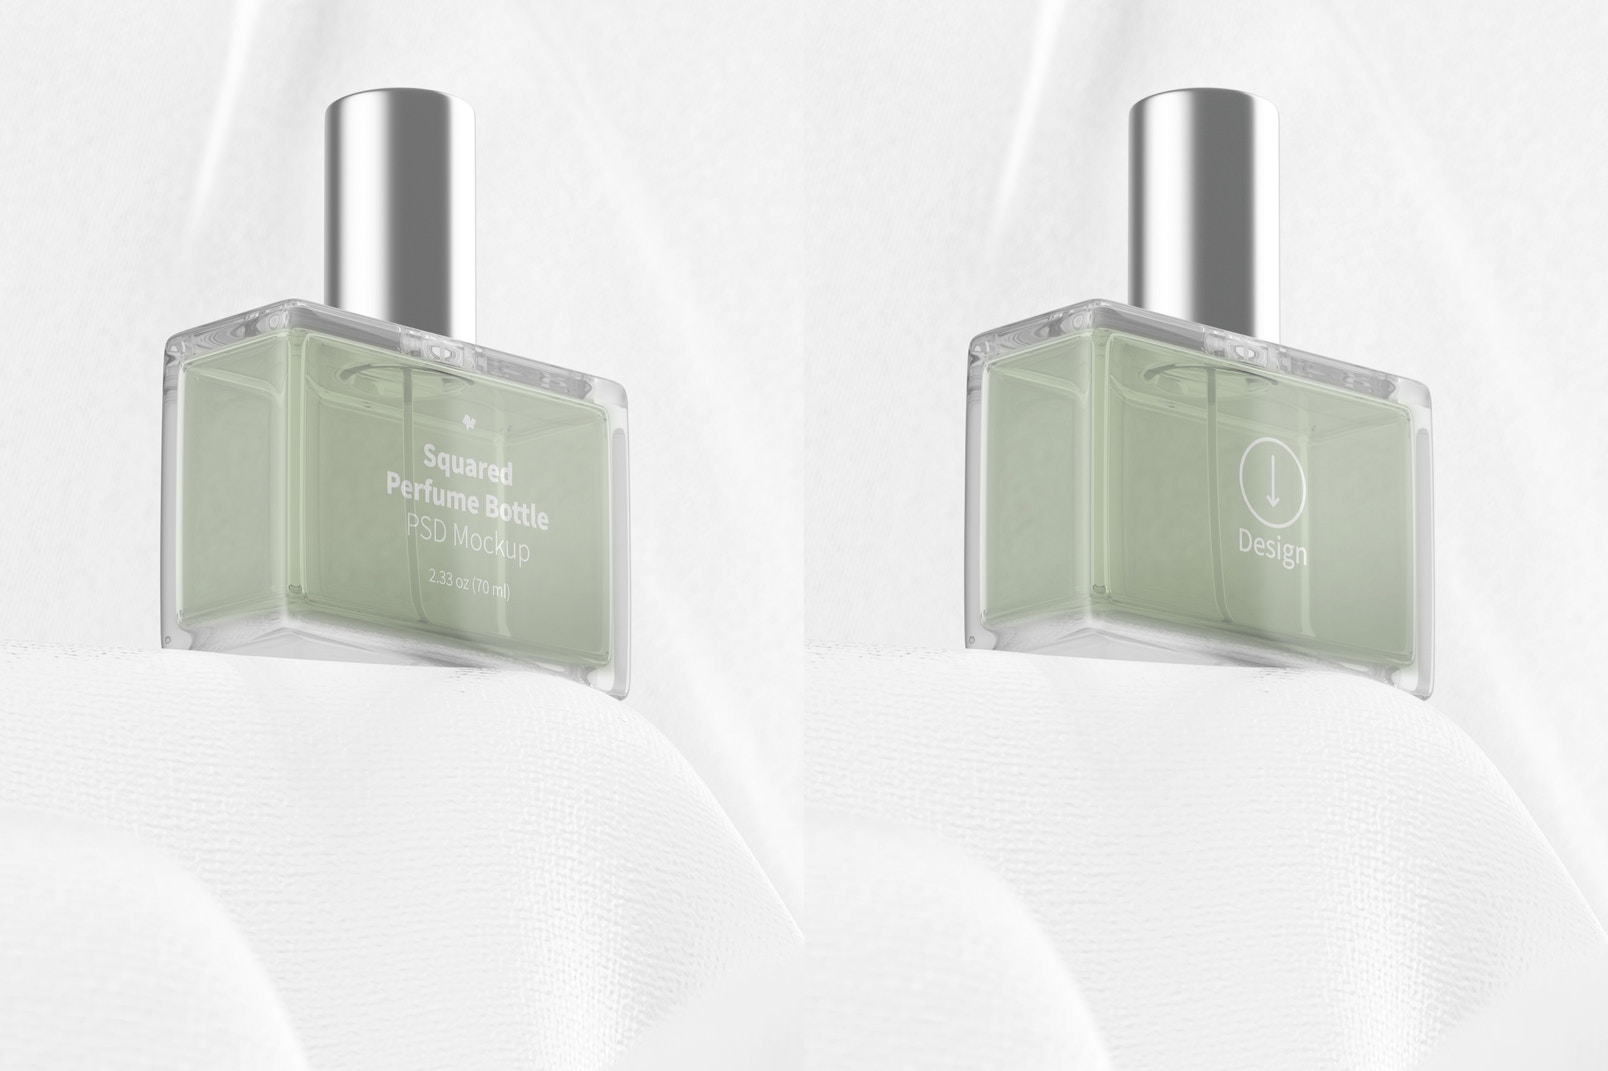 Squared Perfume Bottle Mockup, Perspective